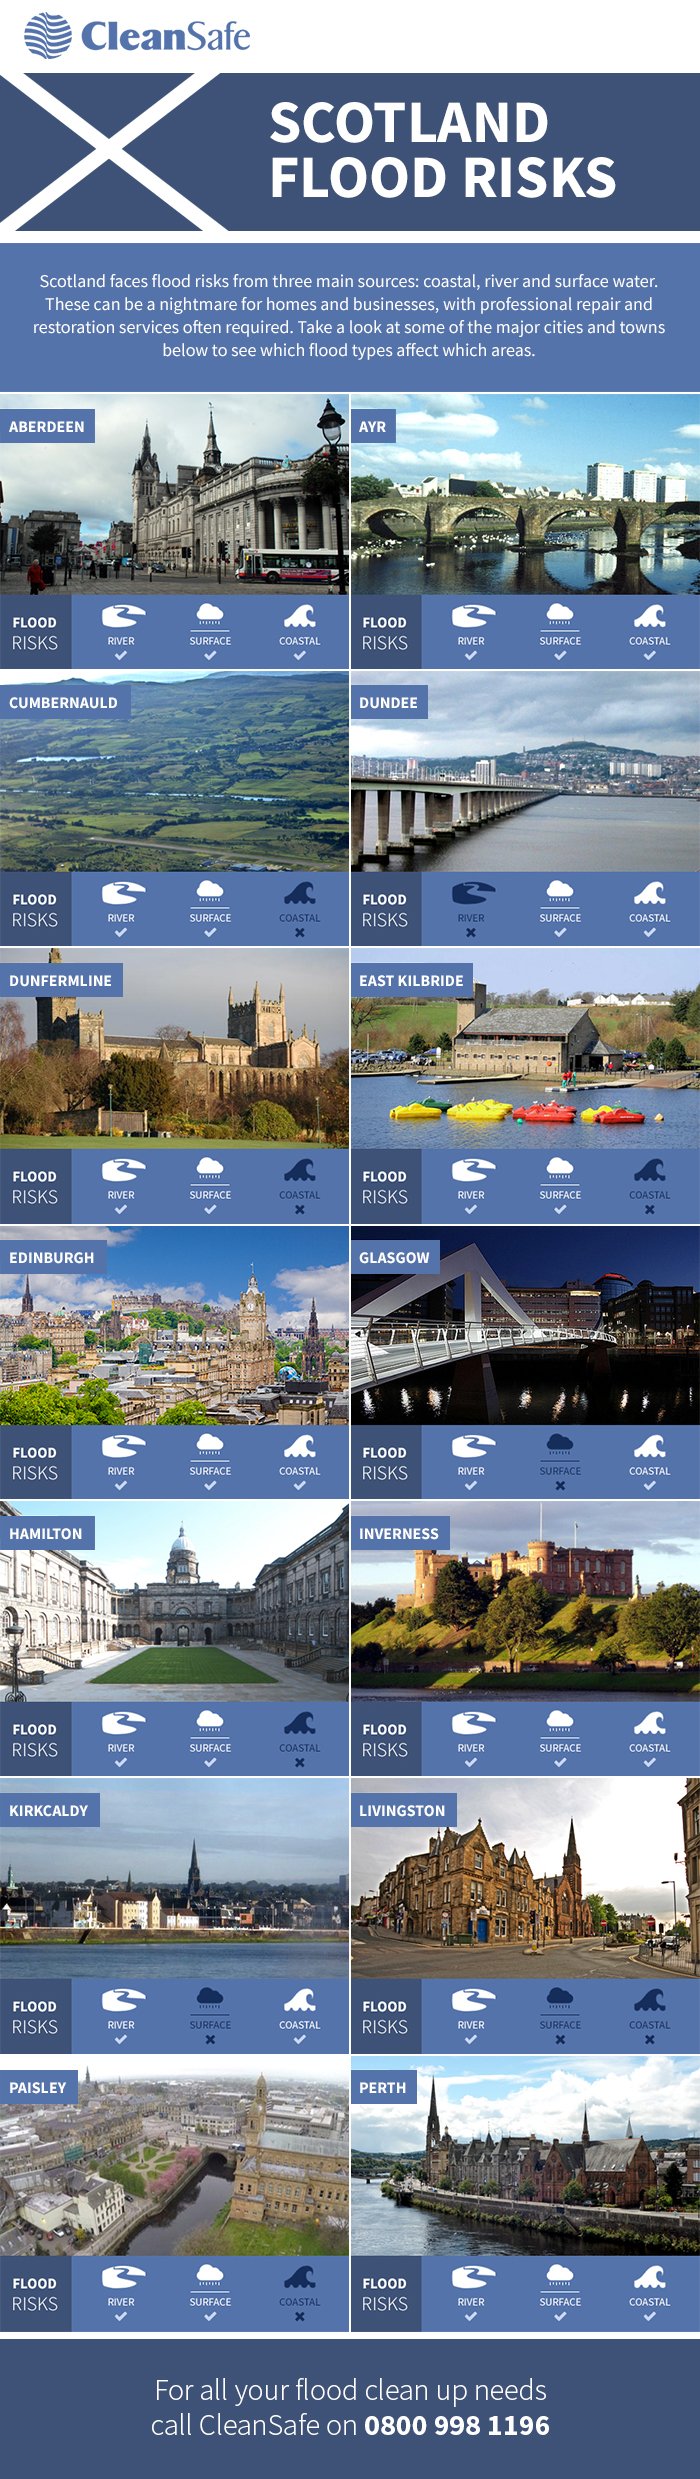 flood risk areas of Scotland infographic